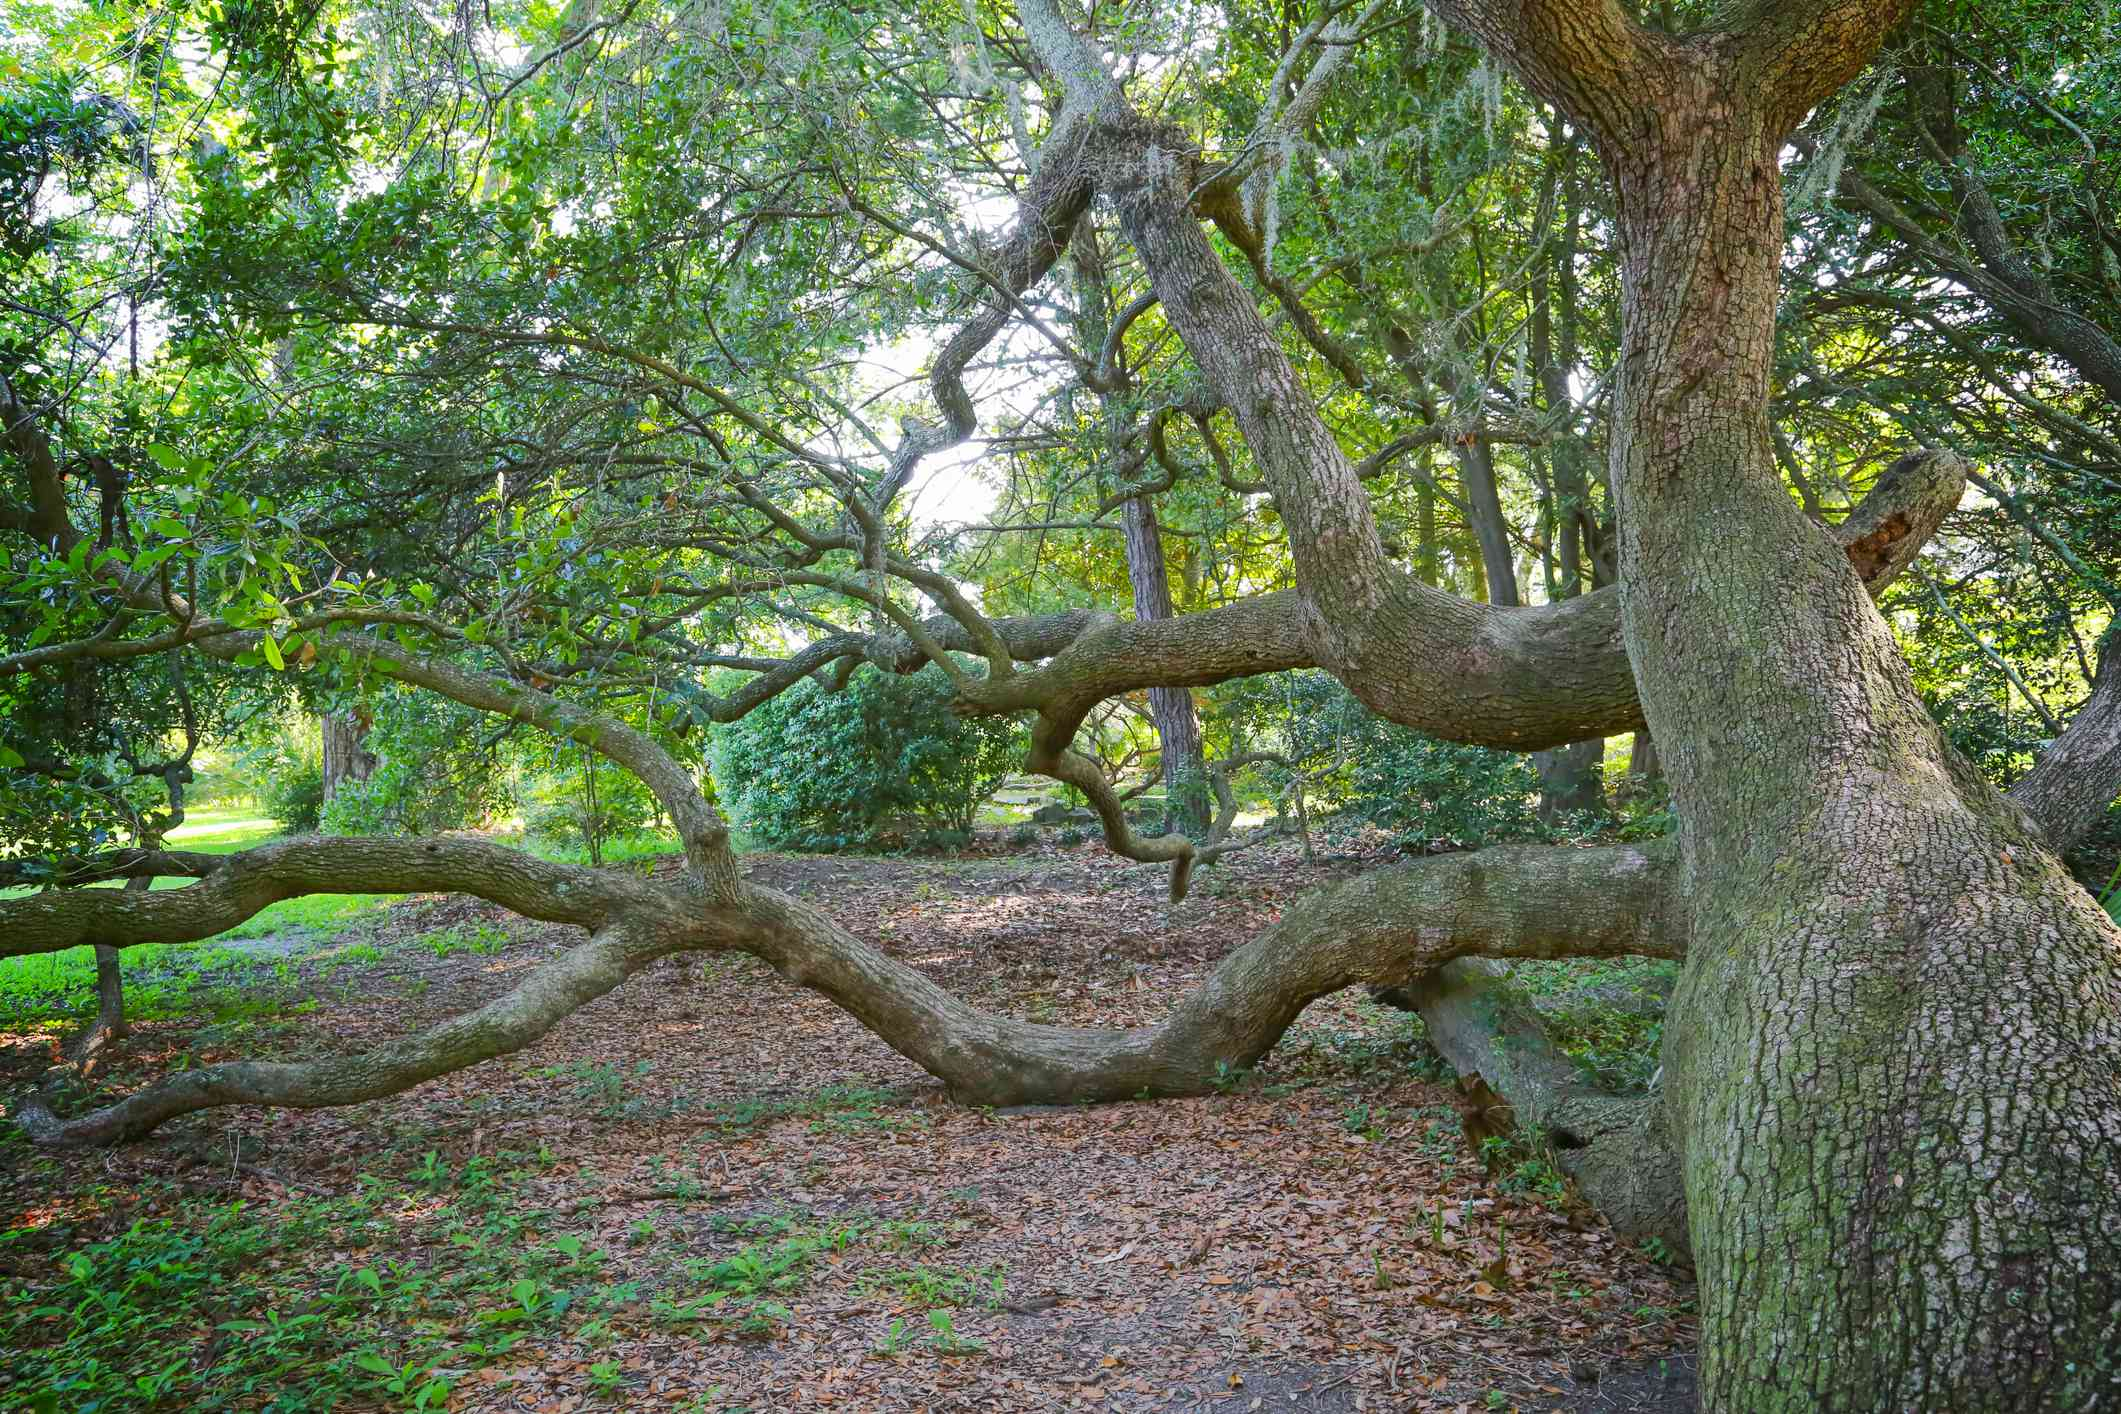 Sprawing branches of a Live Oak tree.